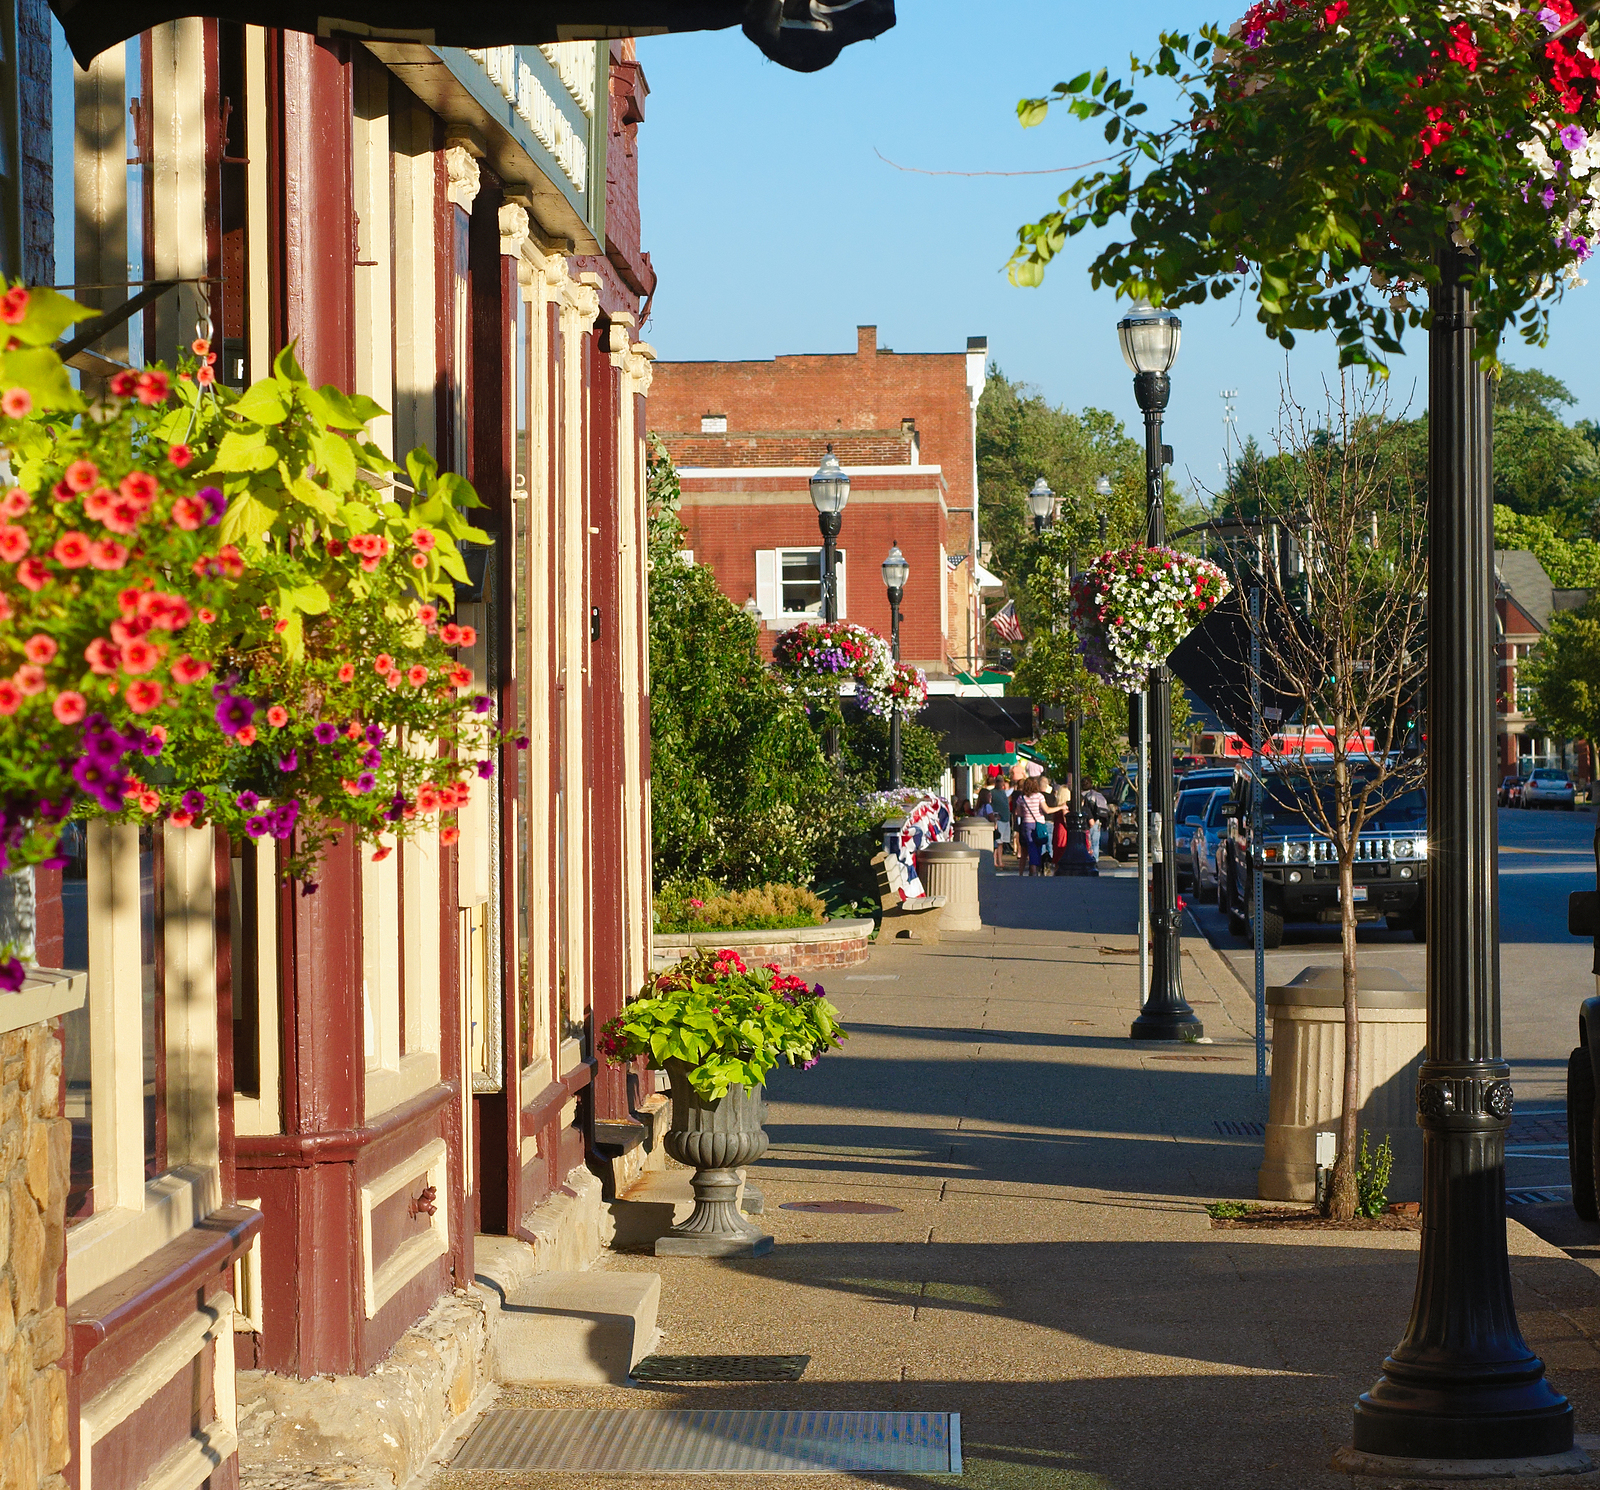 Lexington, Virginia – Put it on Your Travel-Bucket List!